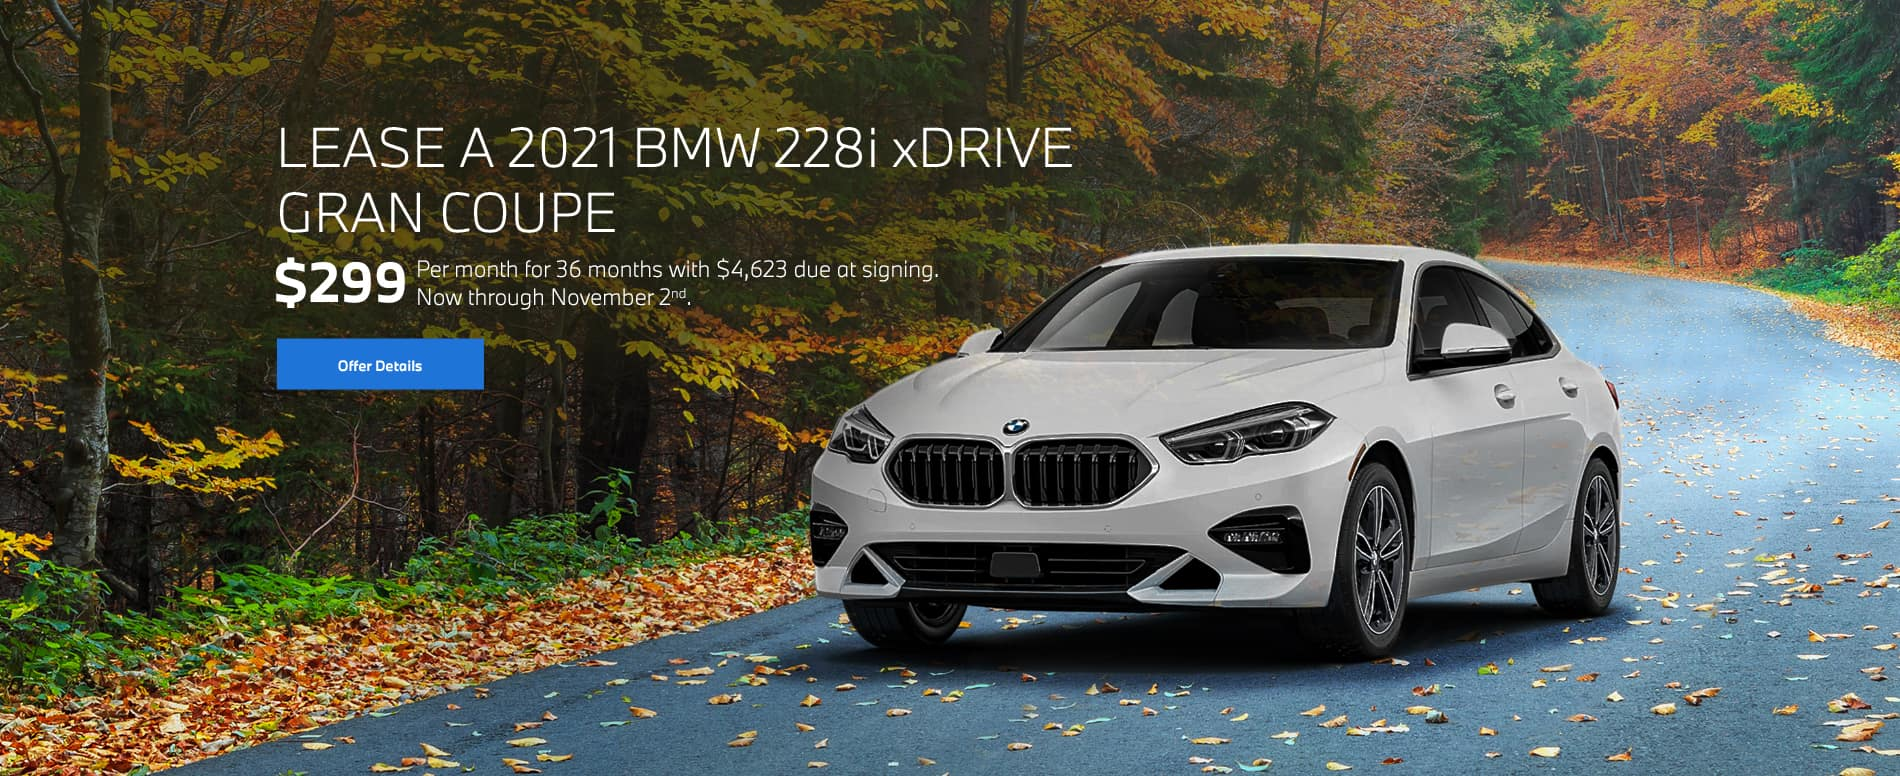 228i xDrive Gran Coupe - Lease a 2021 BMW 228i xDrive Gran Coupe for $299/month for 36 months ($4,623 due at signing now through November 2nd).